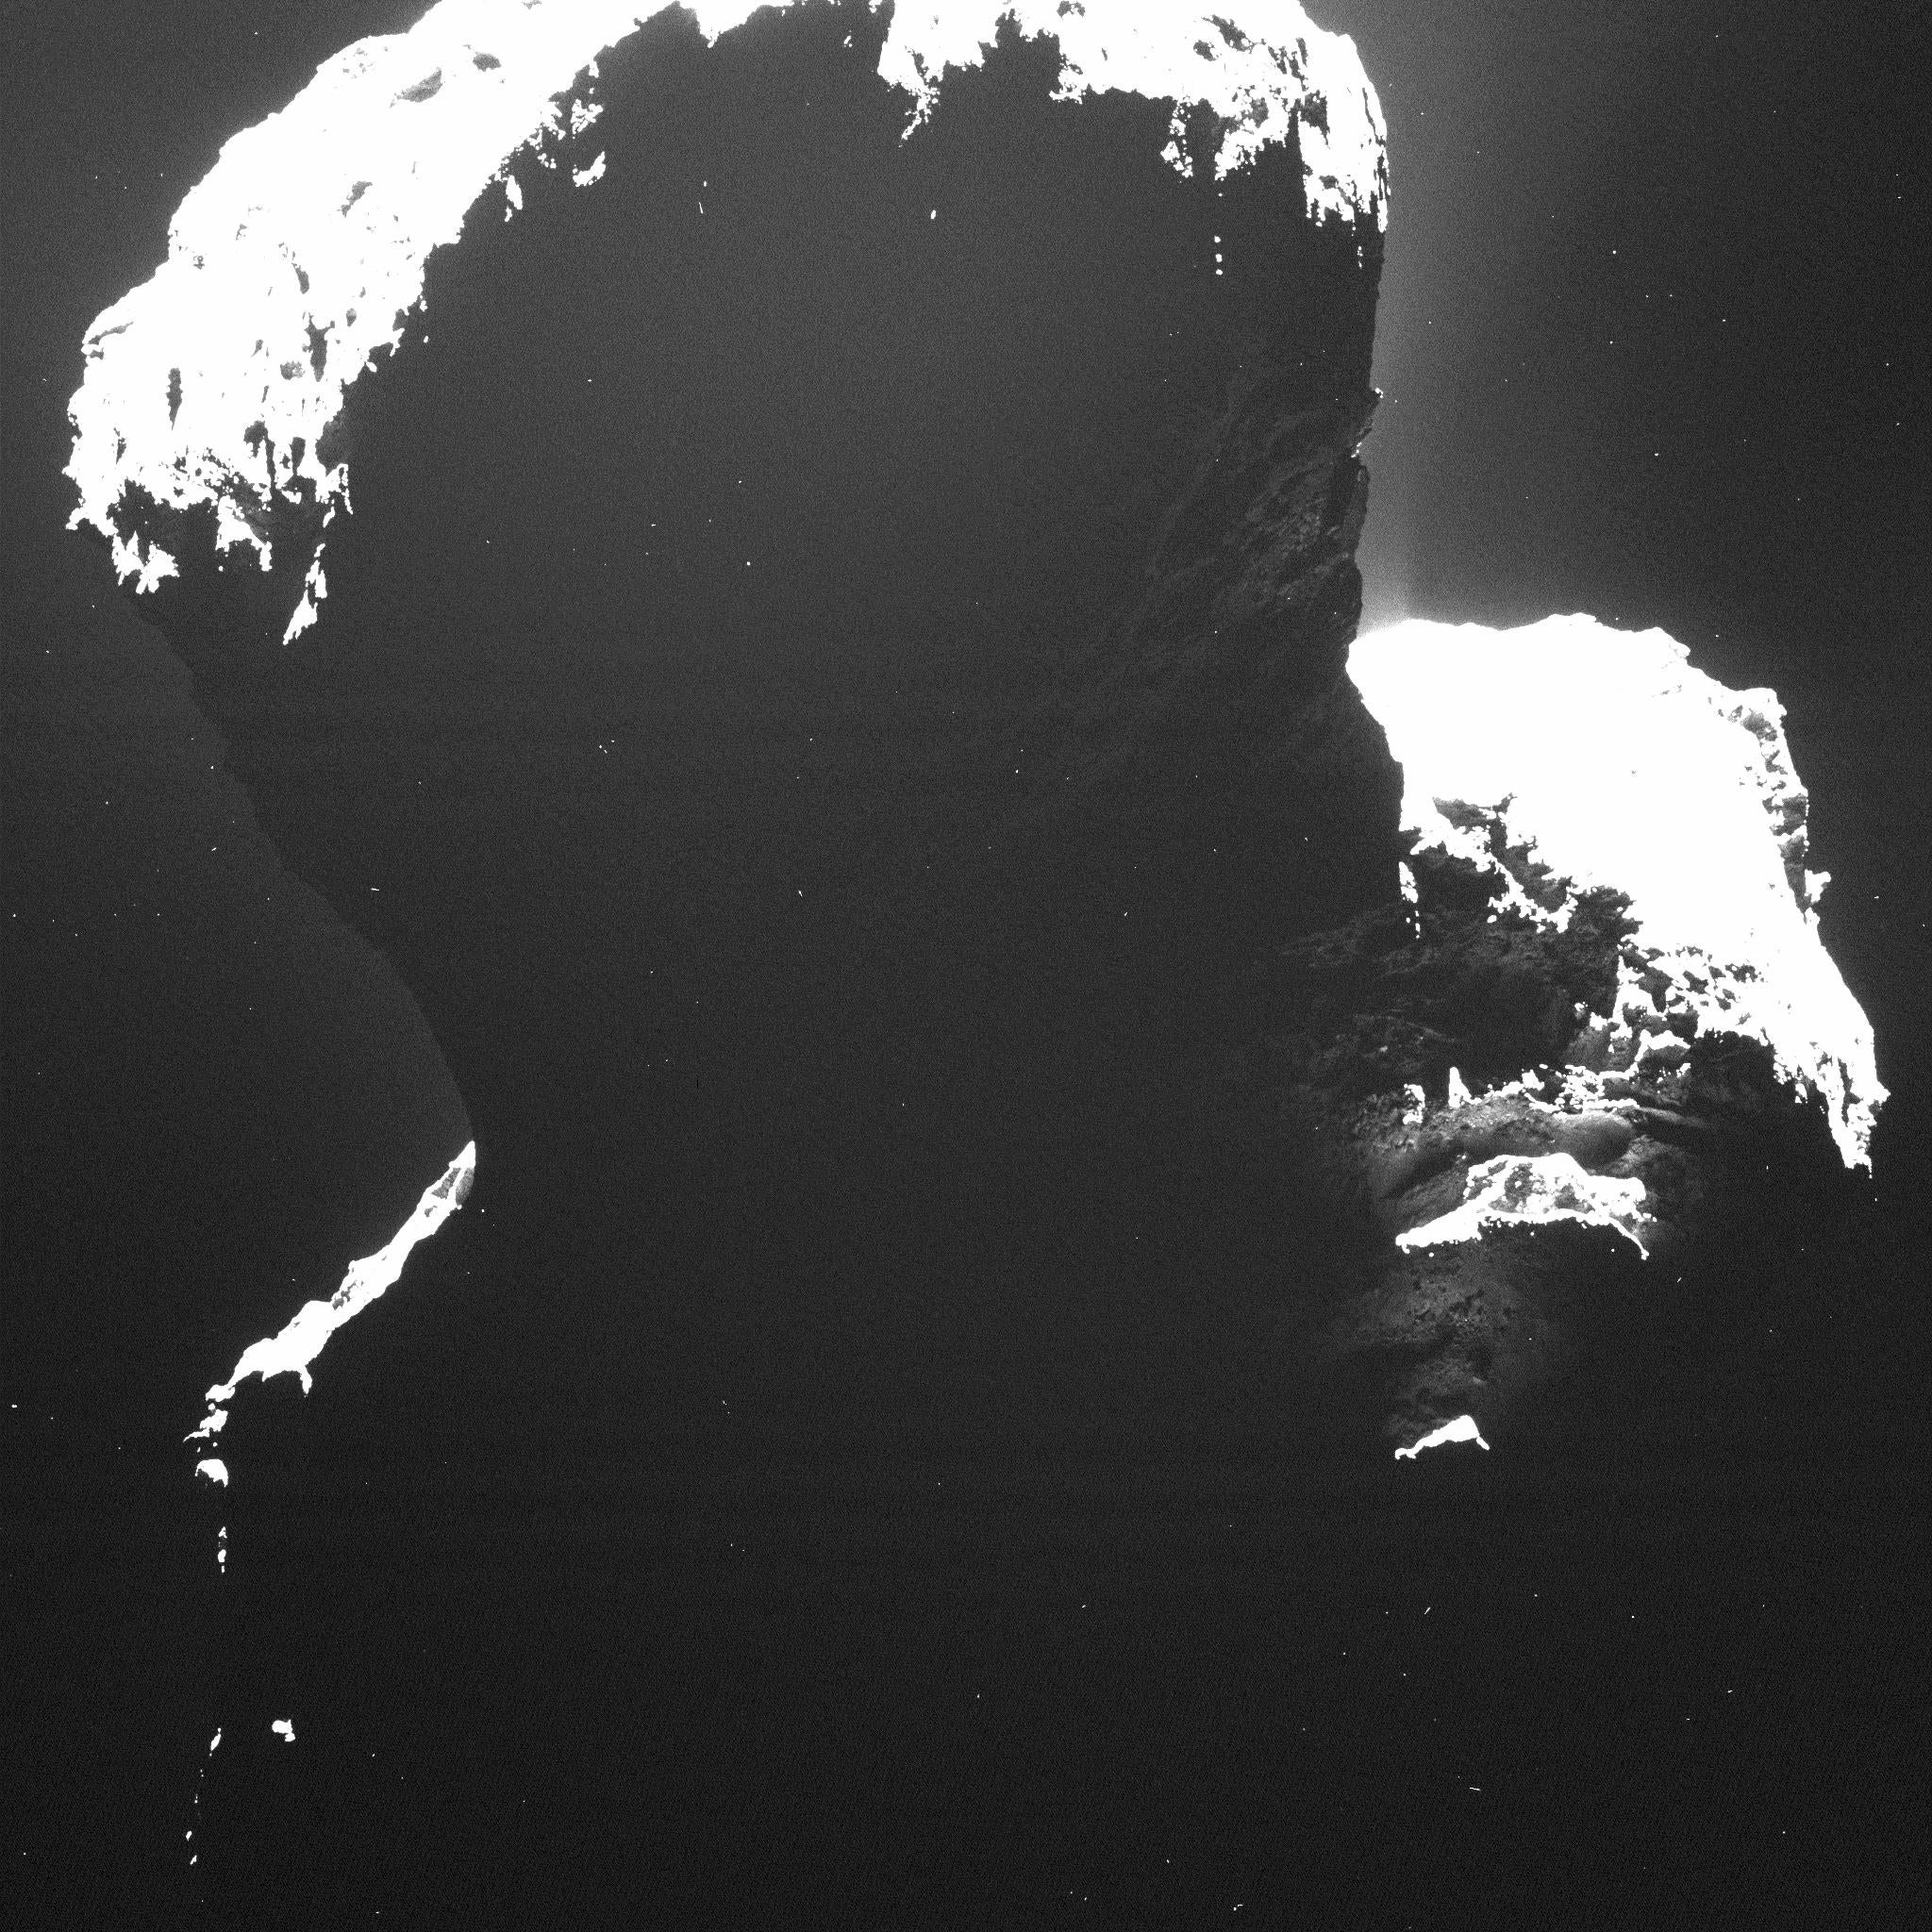 Here's Our First Glimpse of the Rosetta Comet's Dark Side